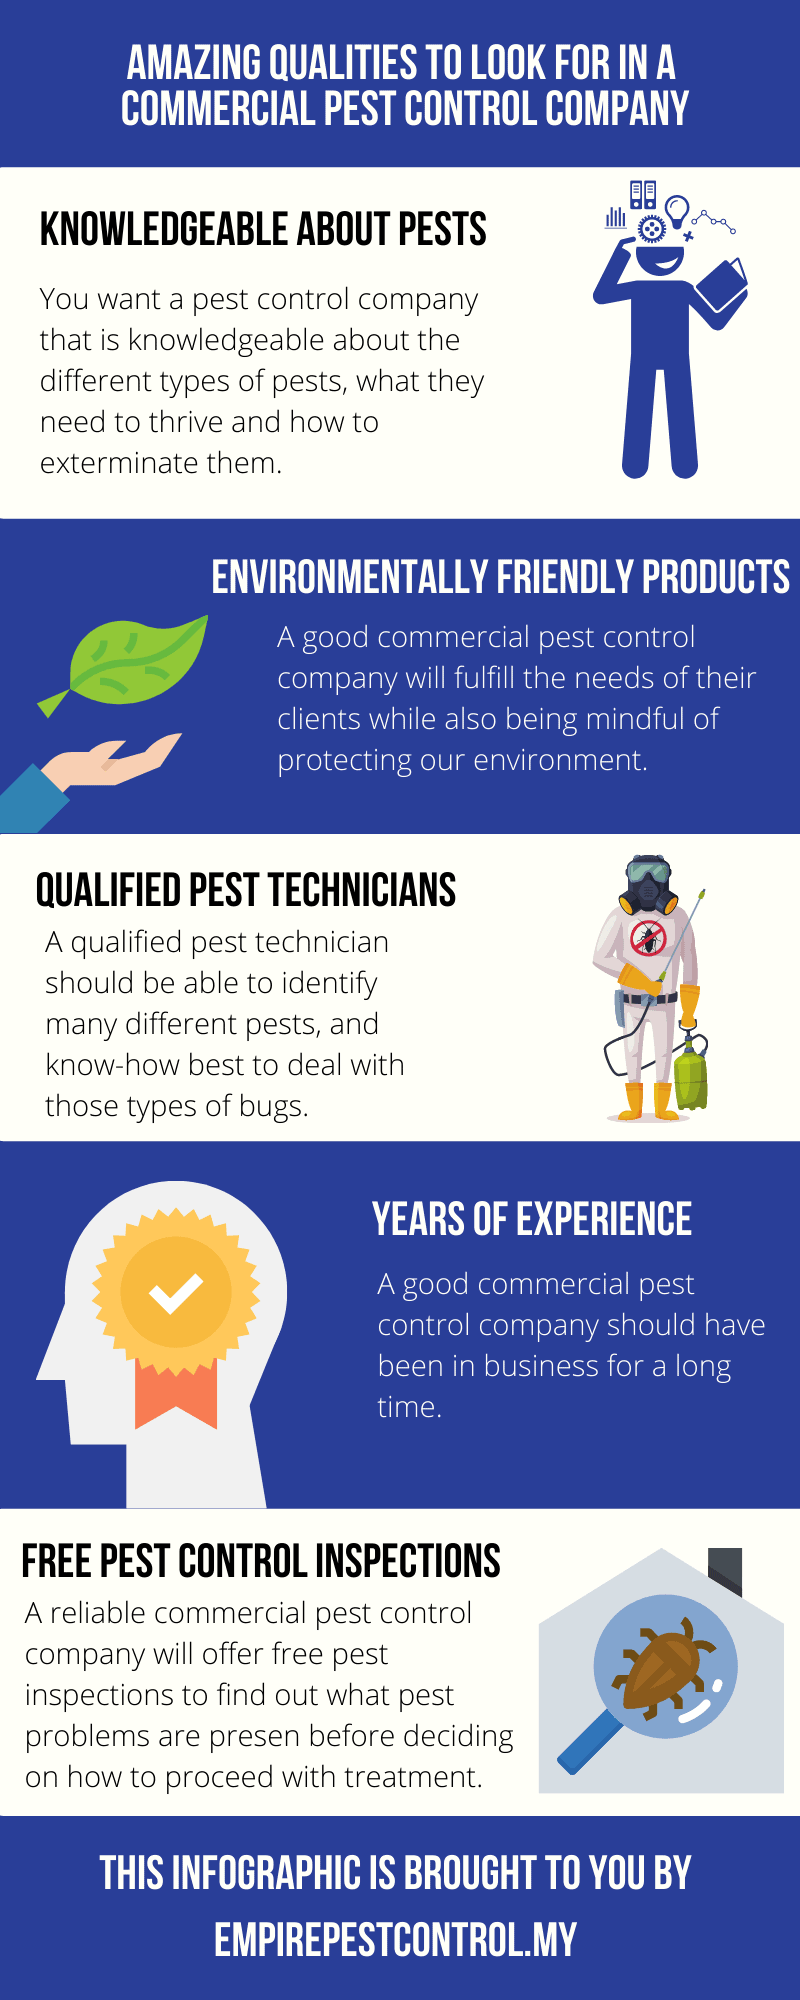 Qualities of Commercial Pest Control Company Infographic